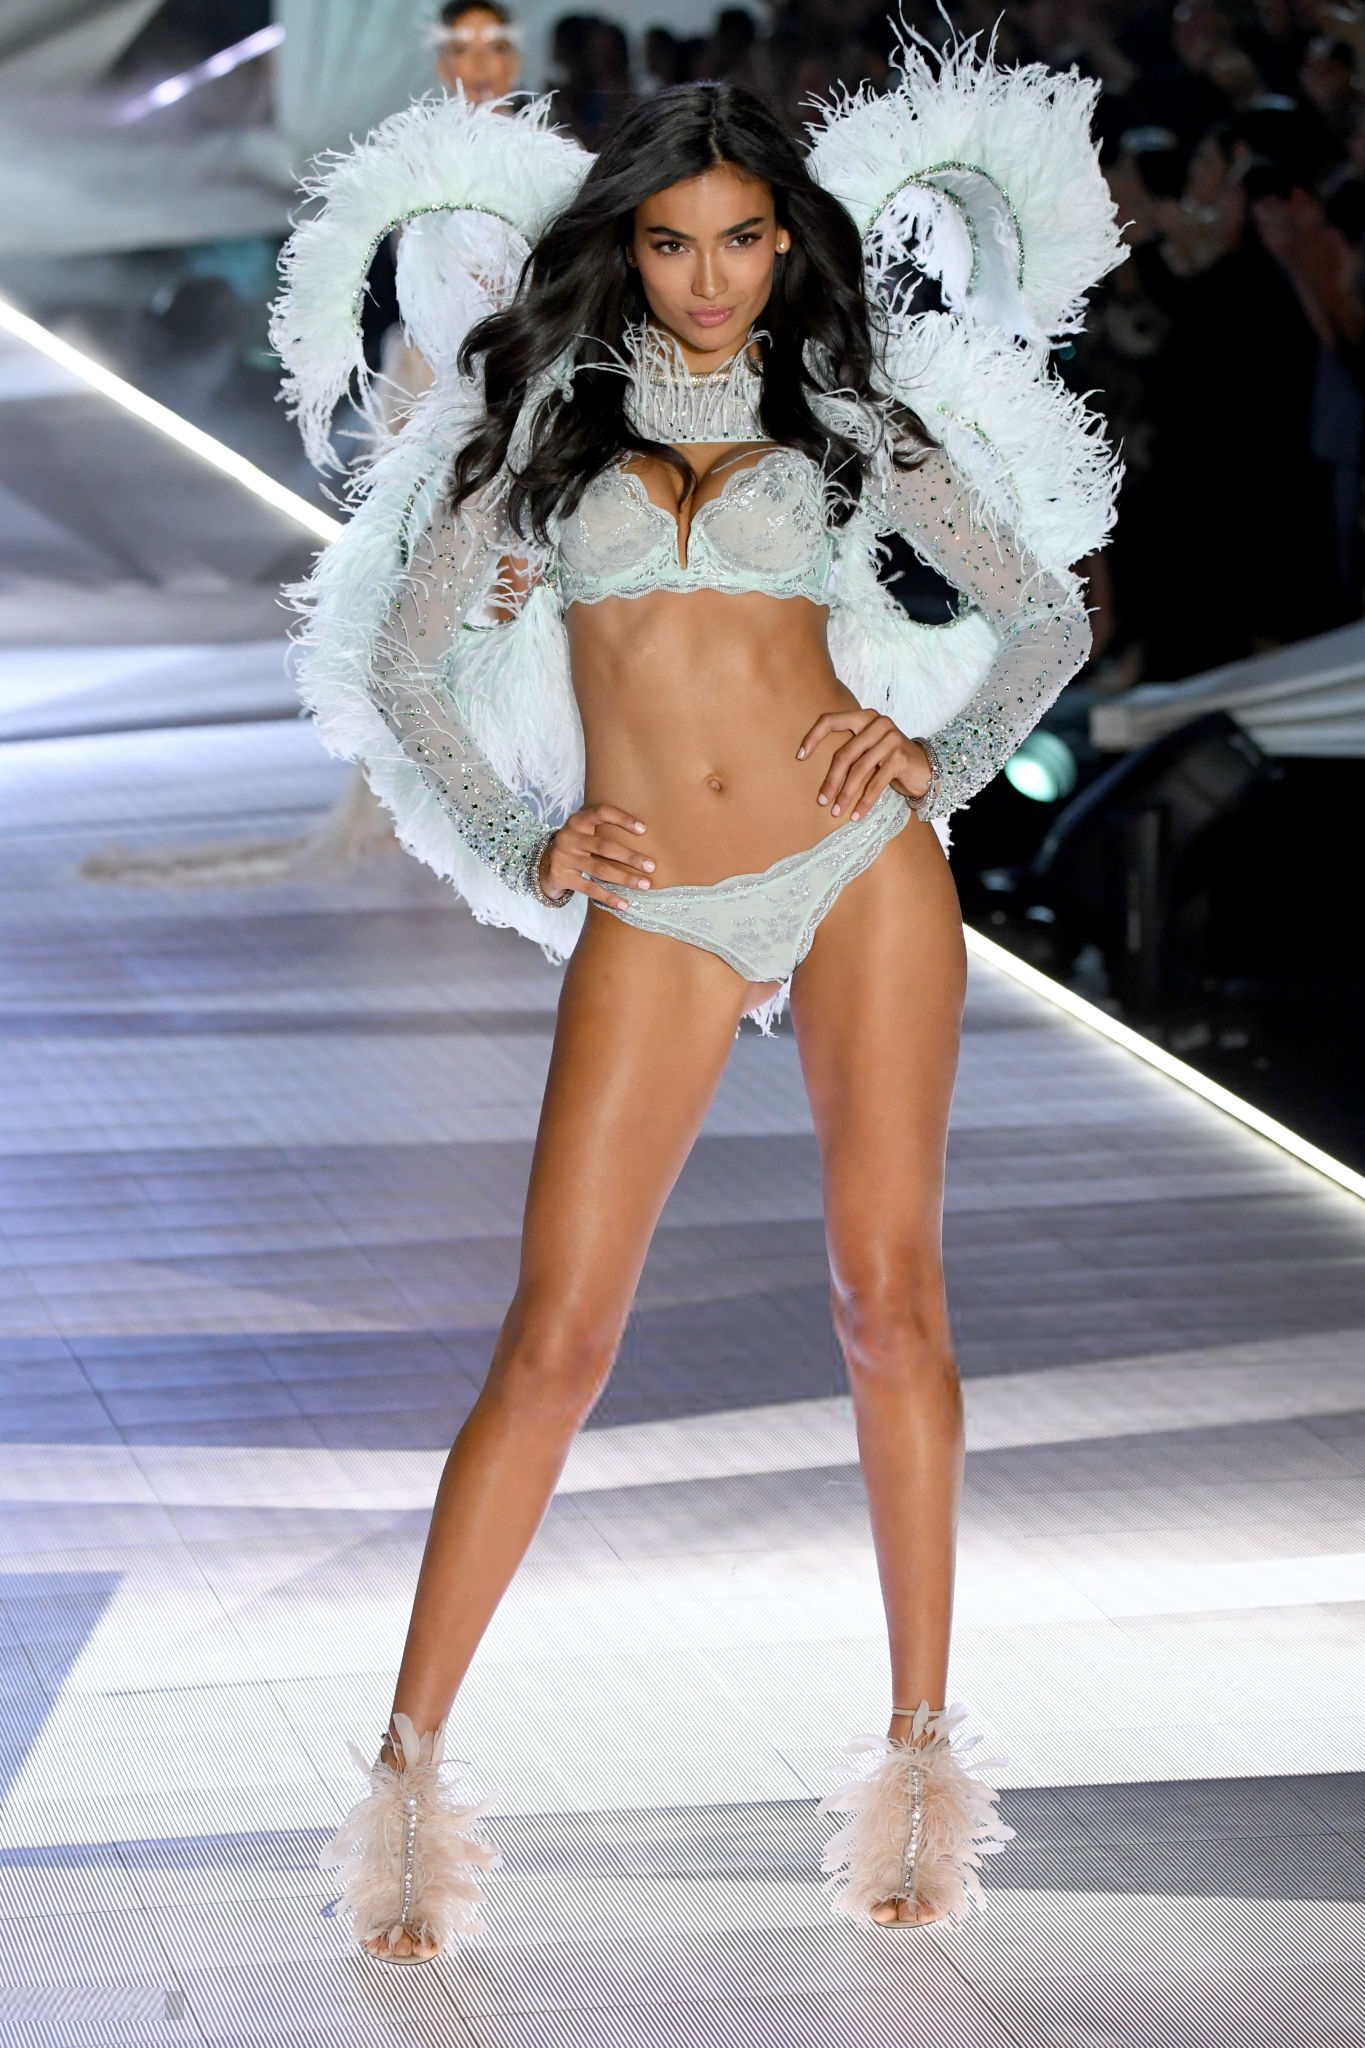 Kelly Gale Top Modeling Photo - Kelly Gale Top Modeling Photo